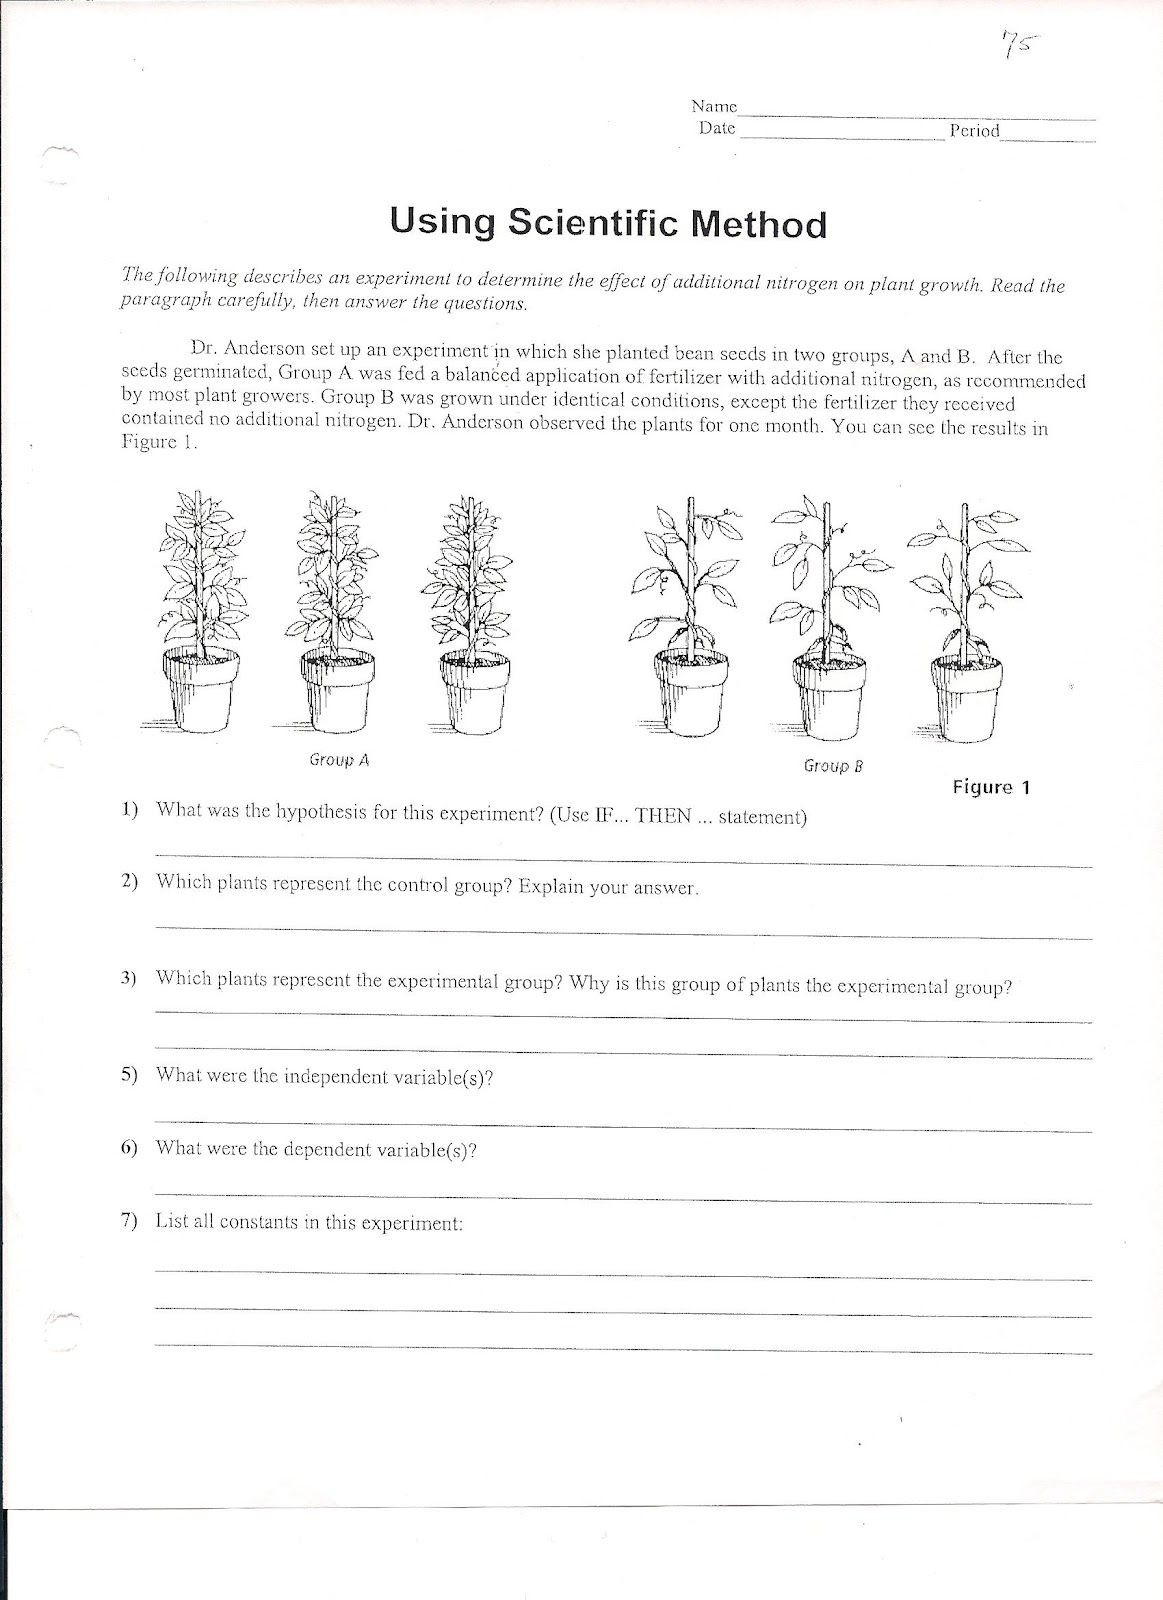 Graphing Worksheets High School Science Using Scientific Method Worksheet 1 163—1 600 Pixels